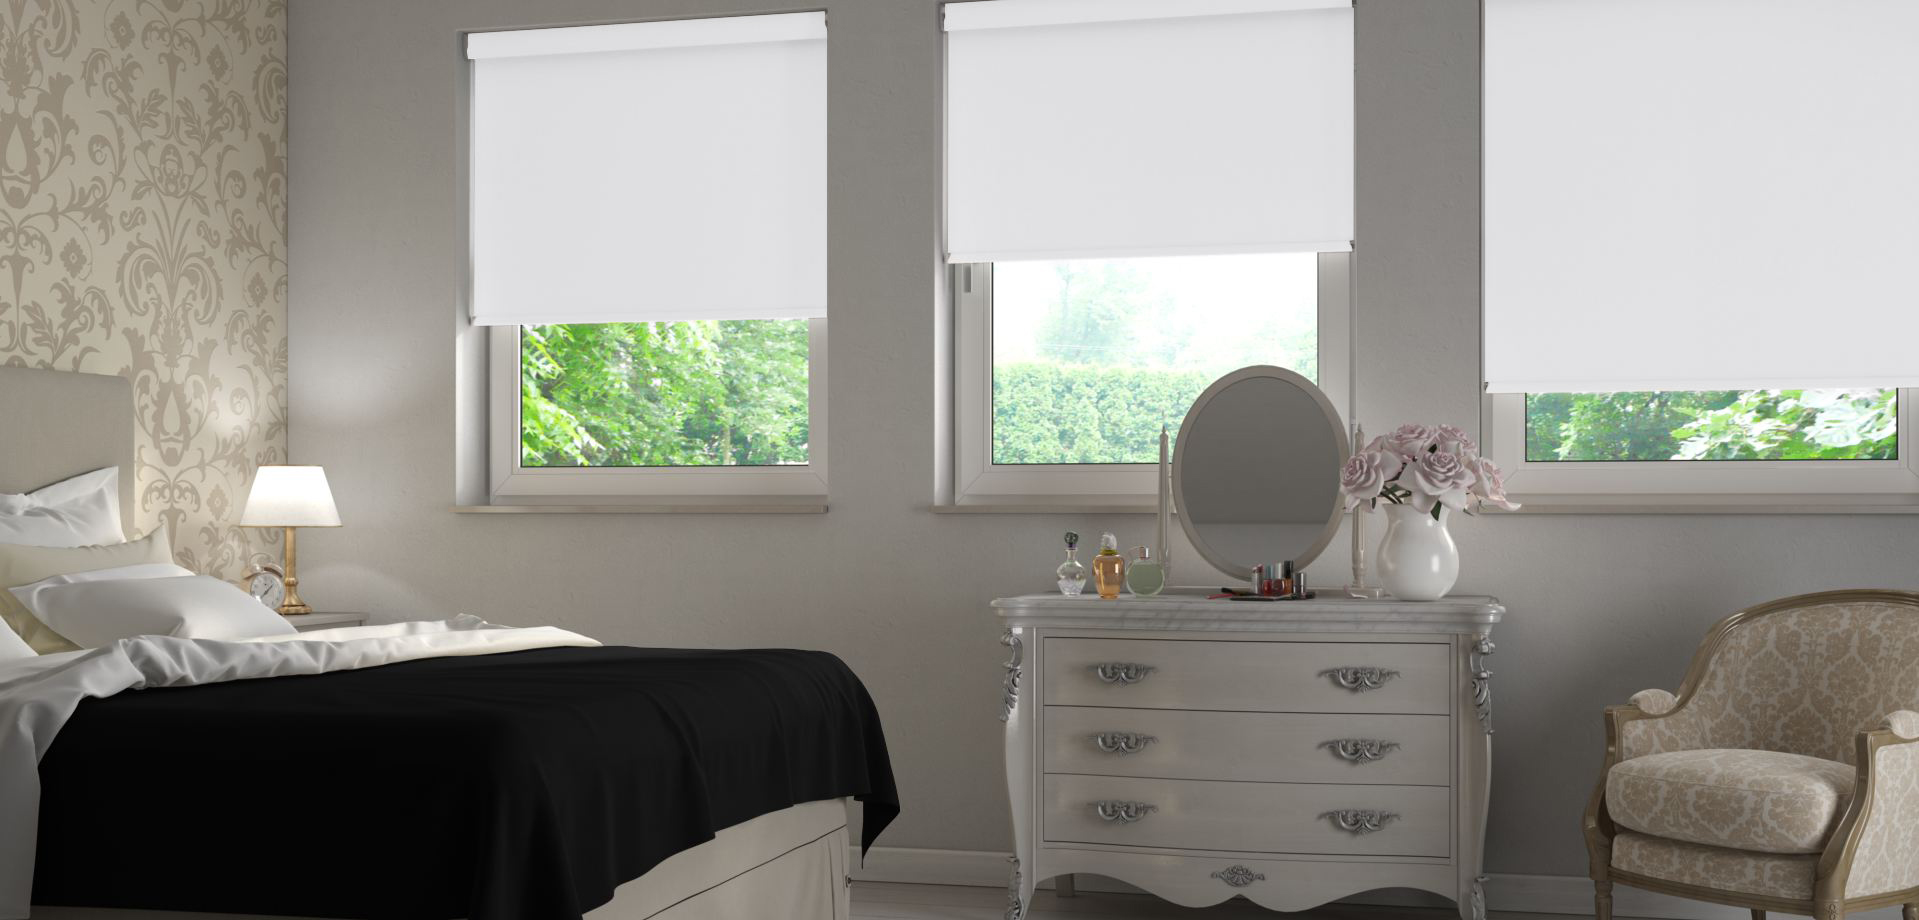 Lander Cashmere Senses Blinds